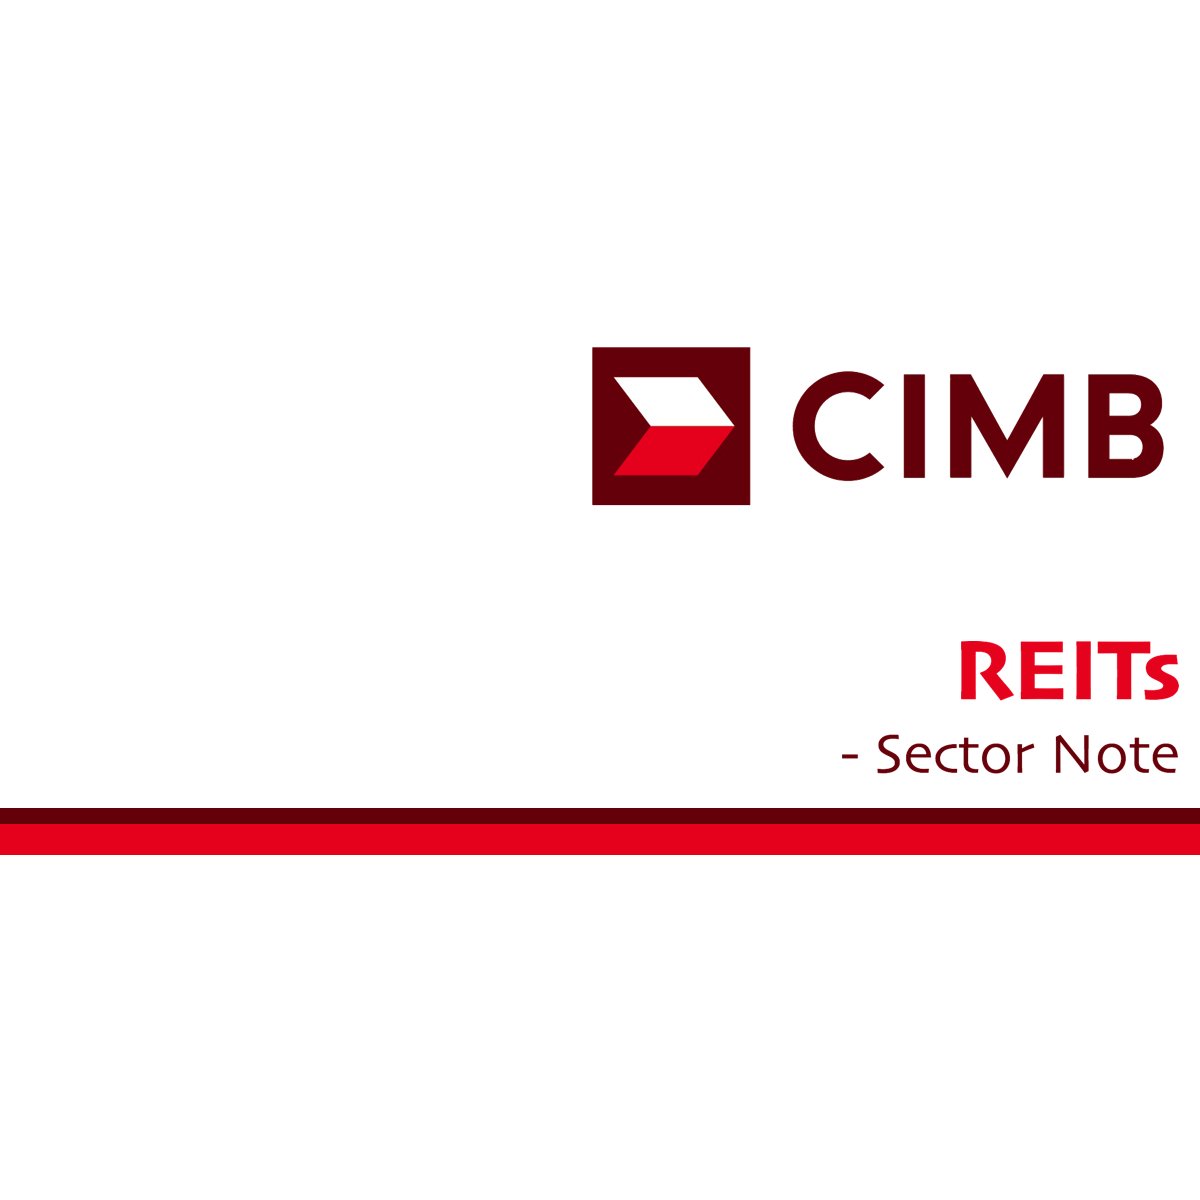 REIT - CIMB Research 2017-03-05: Consolidation at the gates